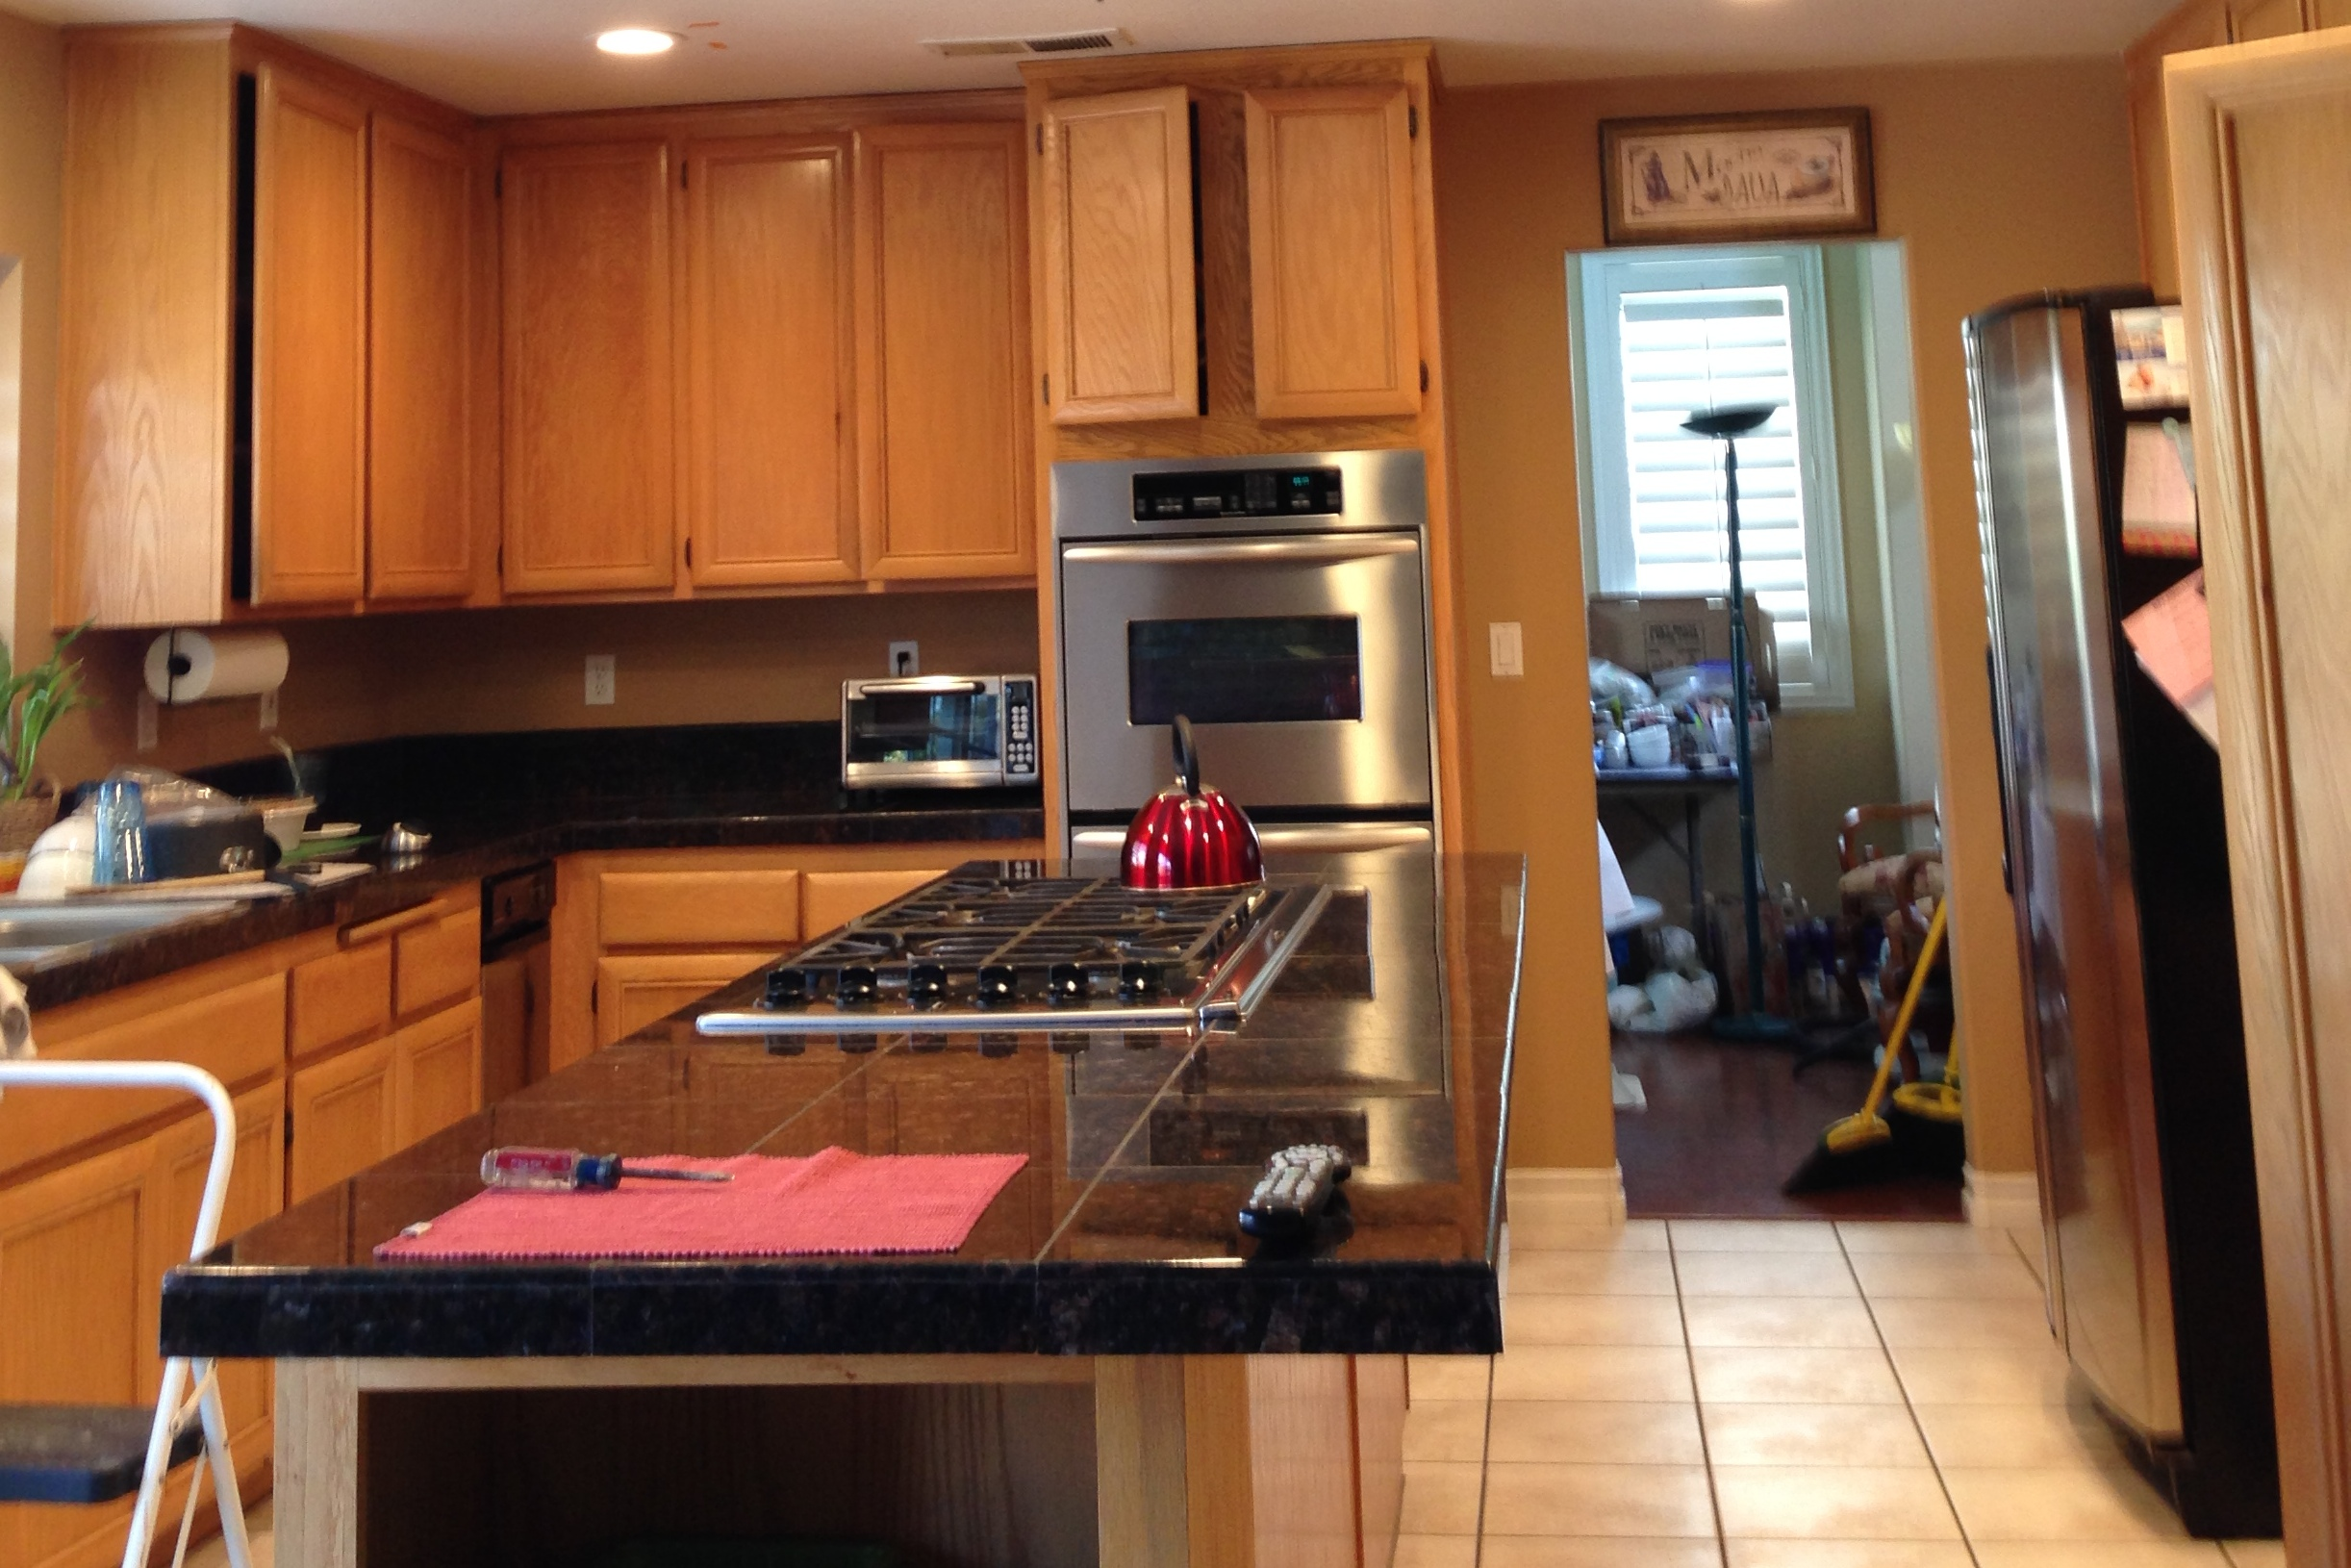 Kitchen cabinets paint job residential oxnard california for Kitchen cabinets jobs